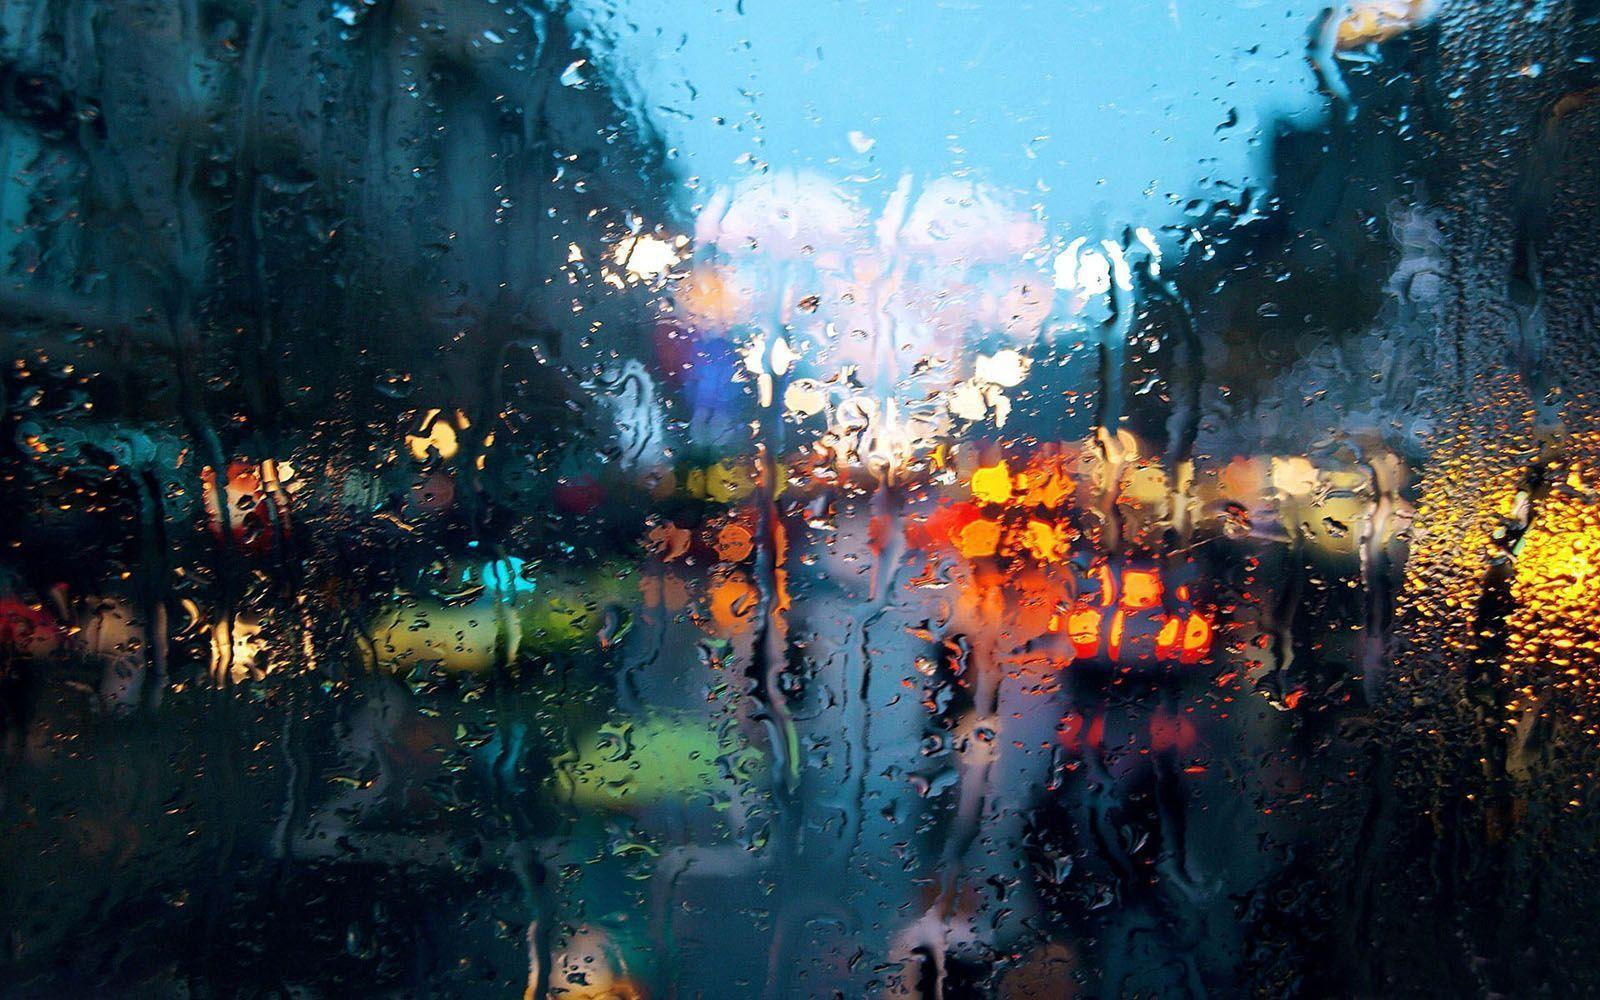 Download Rainy Glass Wallpaper Hd Backgrounds Download